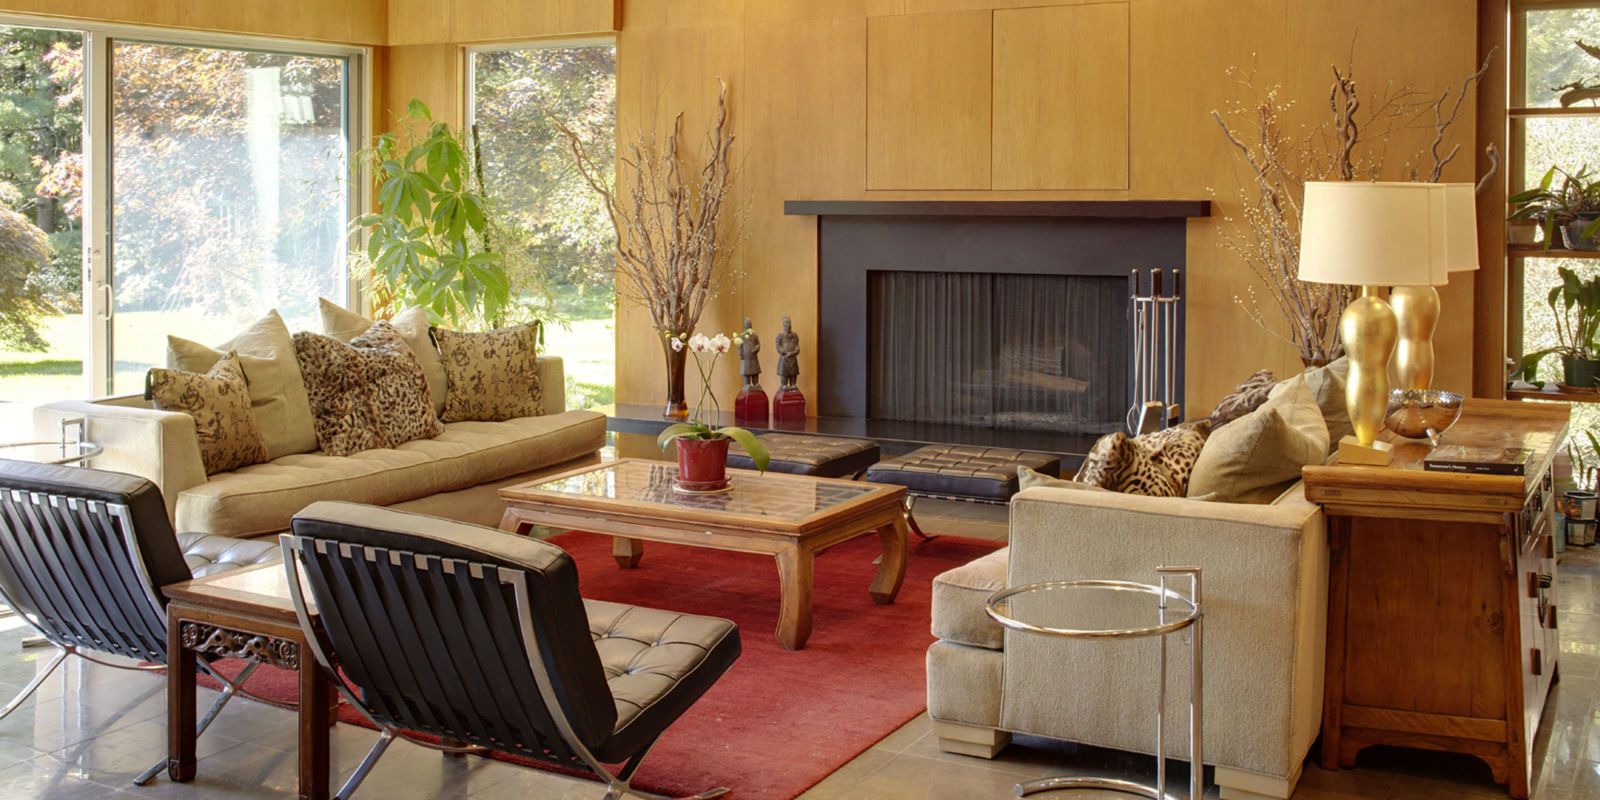 10 Large Living Room Ideas To Fall In Love With: 10 Mid-Century Living Rooms